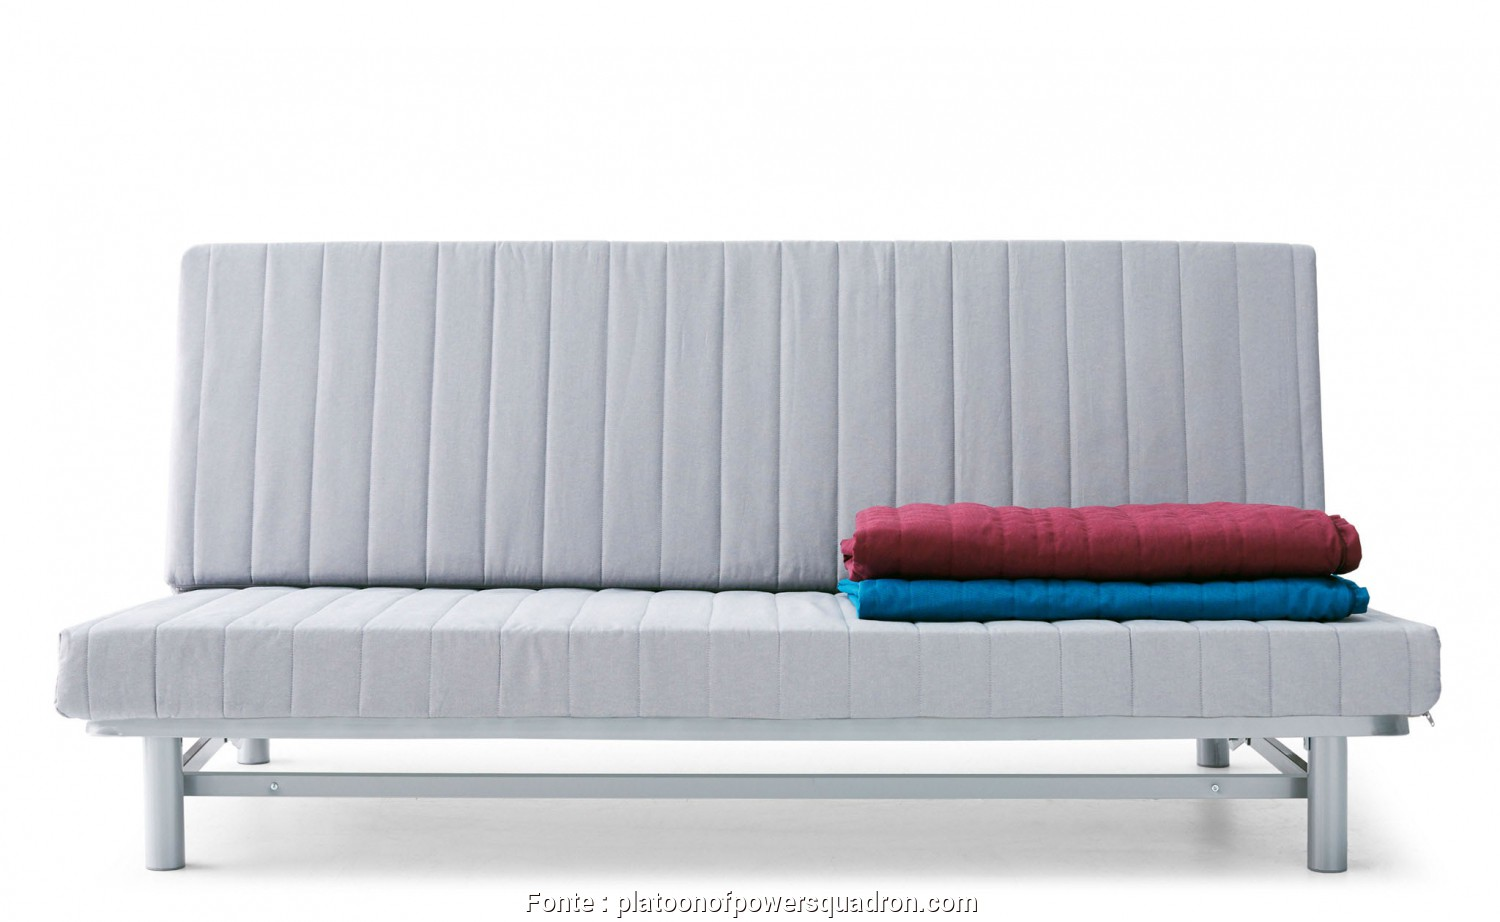 Beddinge Ikea Dimensions, Freddo Furniture: Beddinge Cover To Give Your Sofa, Room Cute Look